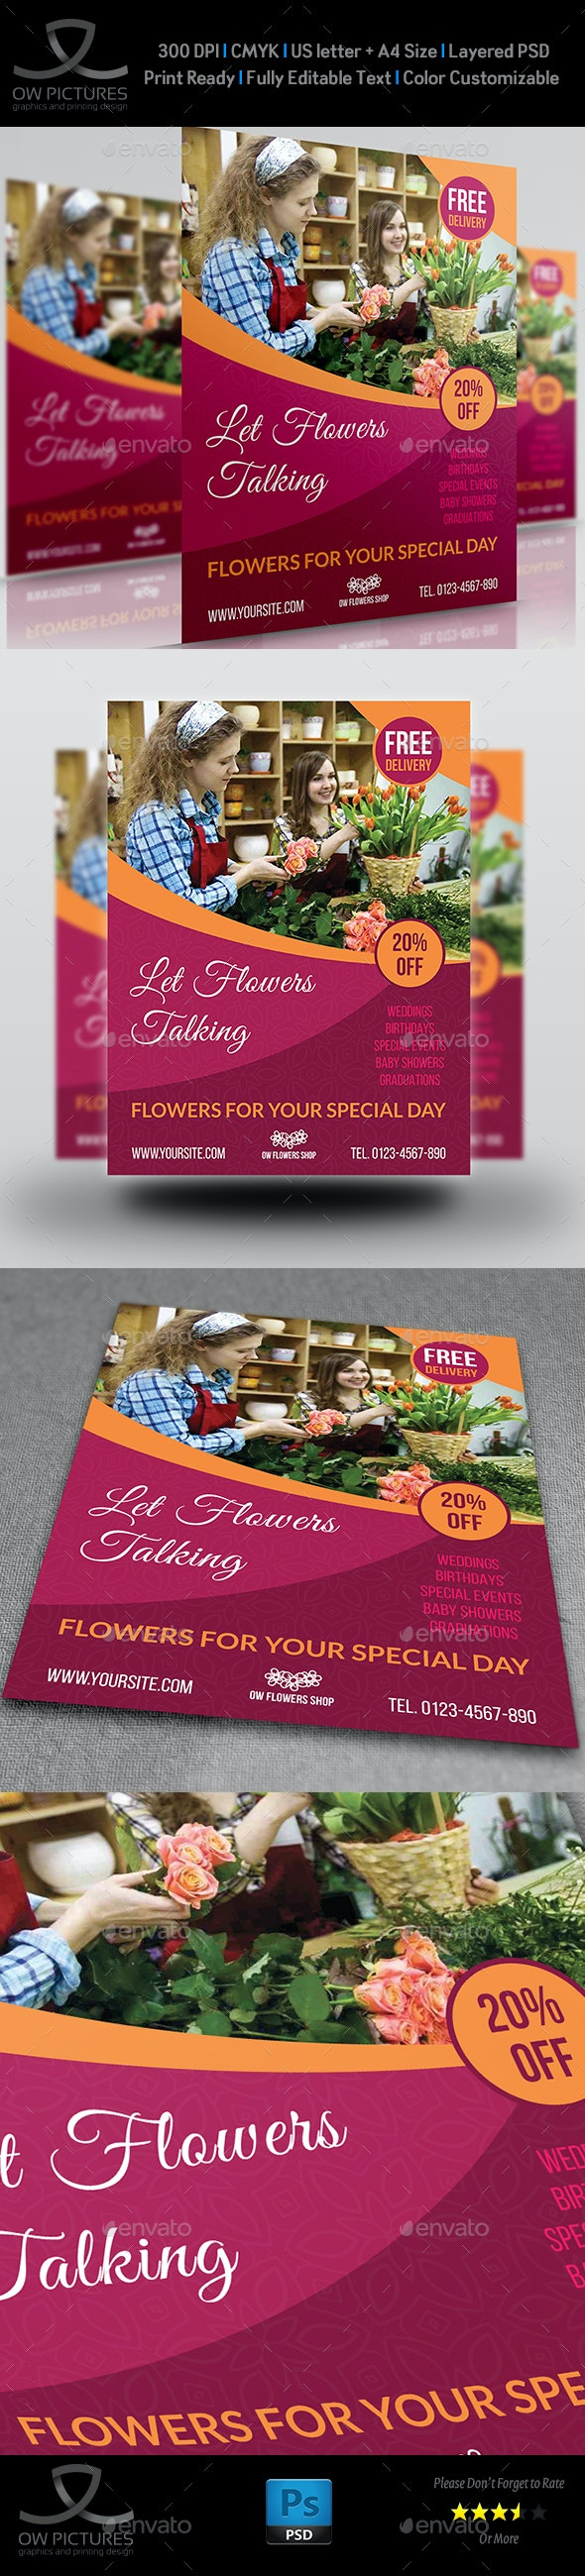 Flower Shop Flyer Template Vol.2 - Flyers Print Templates